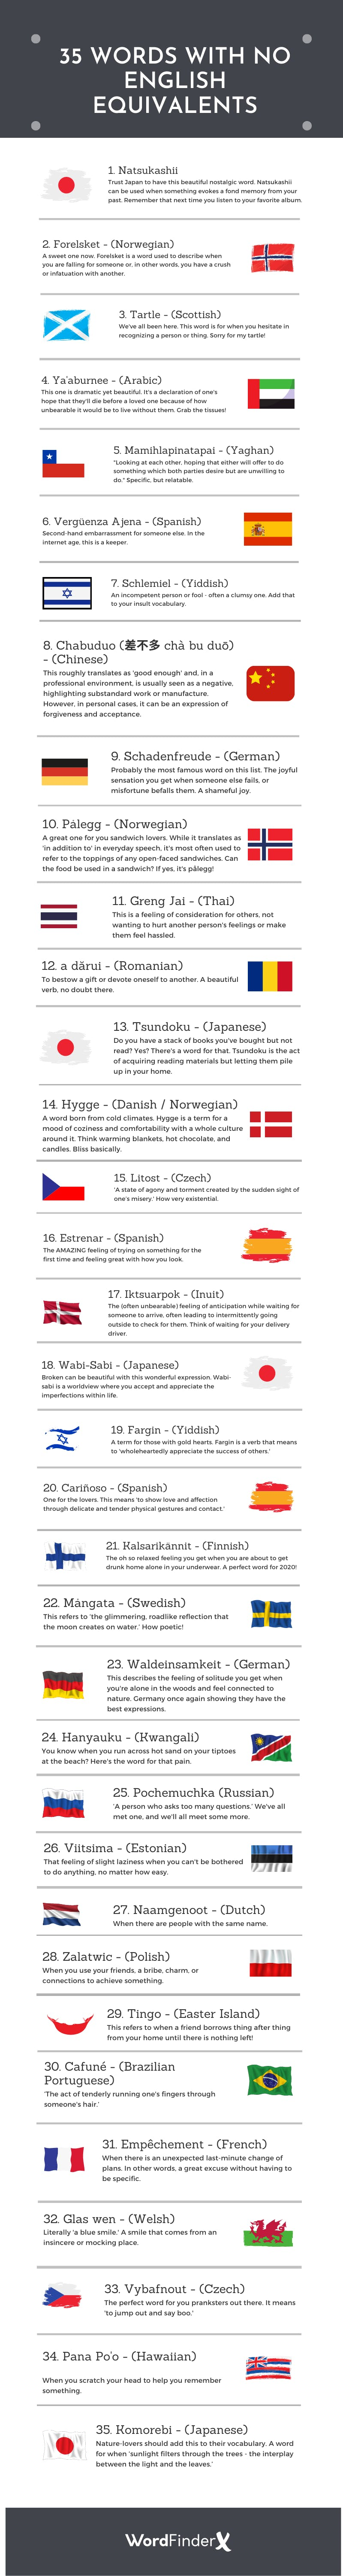 words that can't be translated into English - infographic